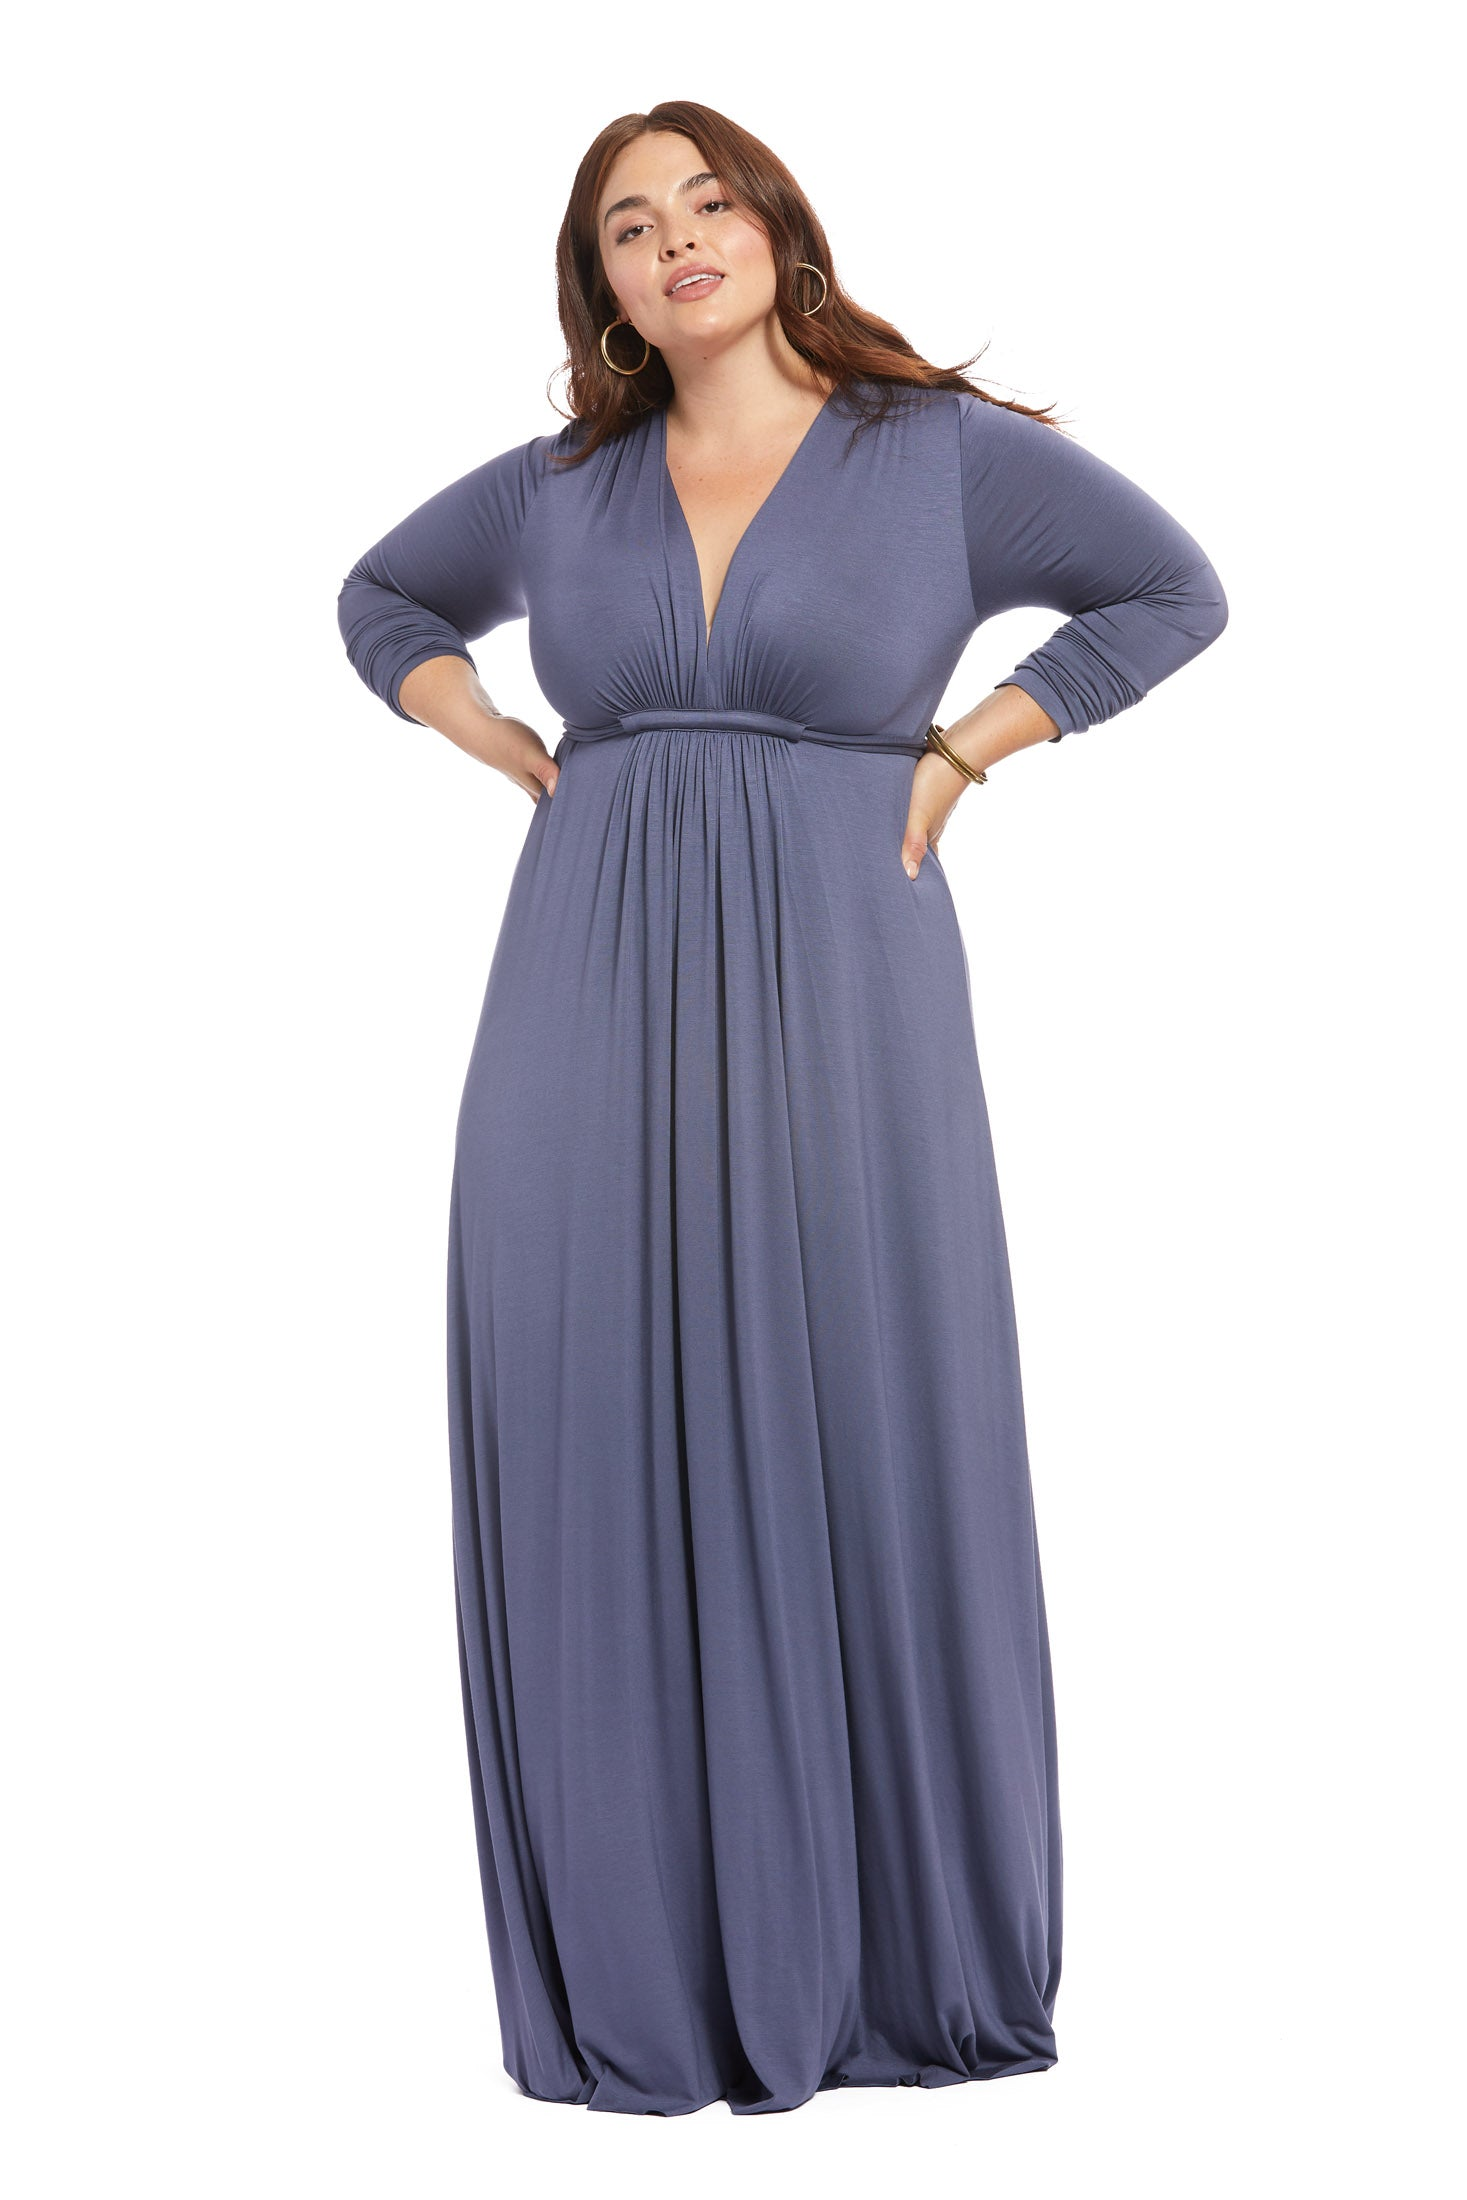 Long Sleeve Full Length Caftan - Slate, Plus Size